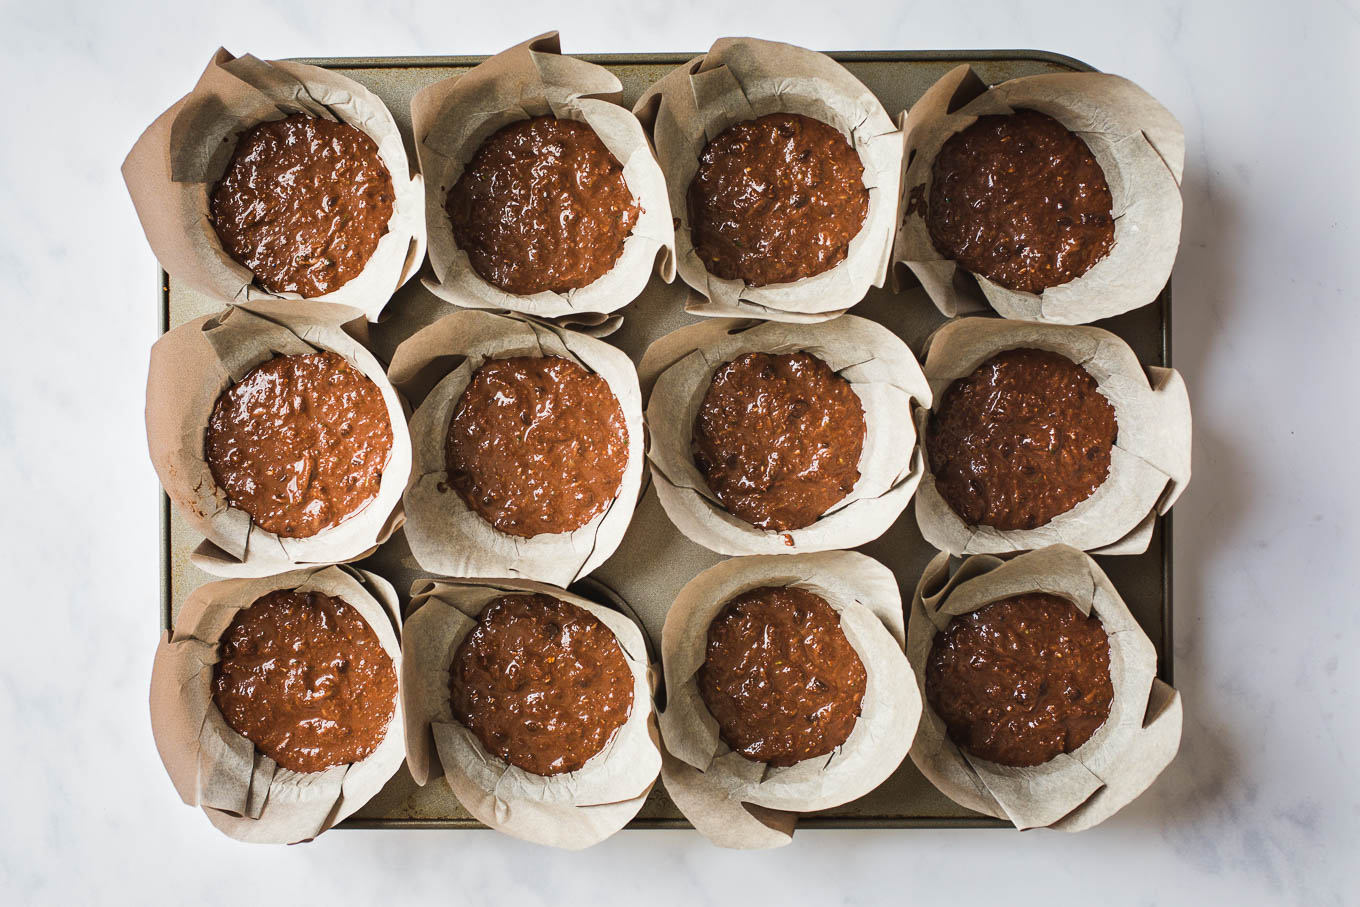 Vegan Gluten-Free Chocolate Zucchini Muffins made with almond flour, unsweetened cocoa powder, fresh zucchini, and sweetened with coconut sugar.